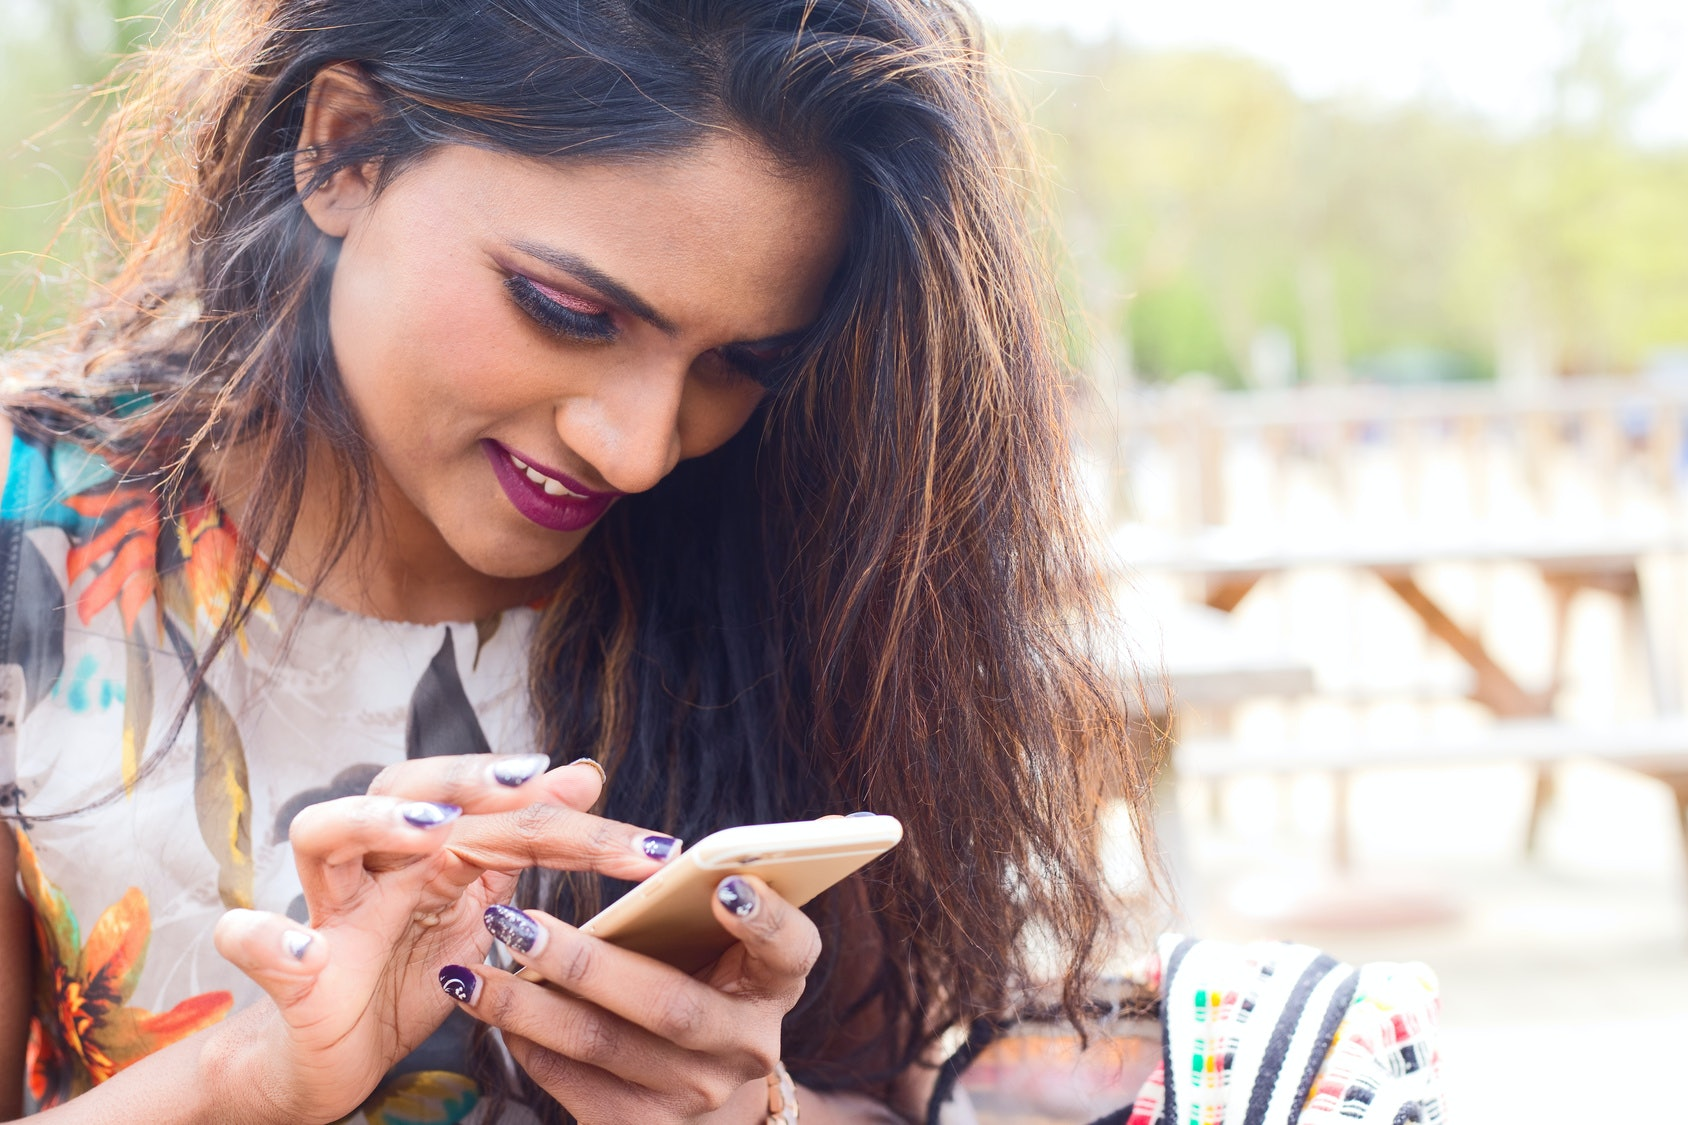 Apps for sexting strangers